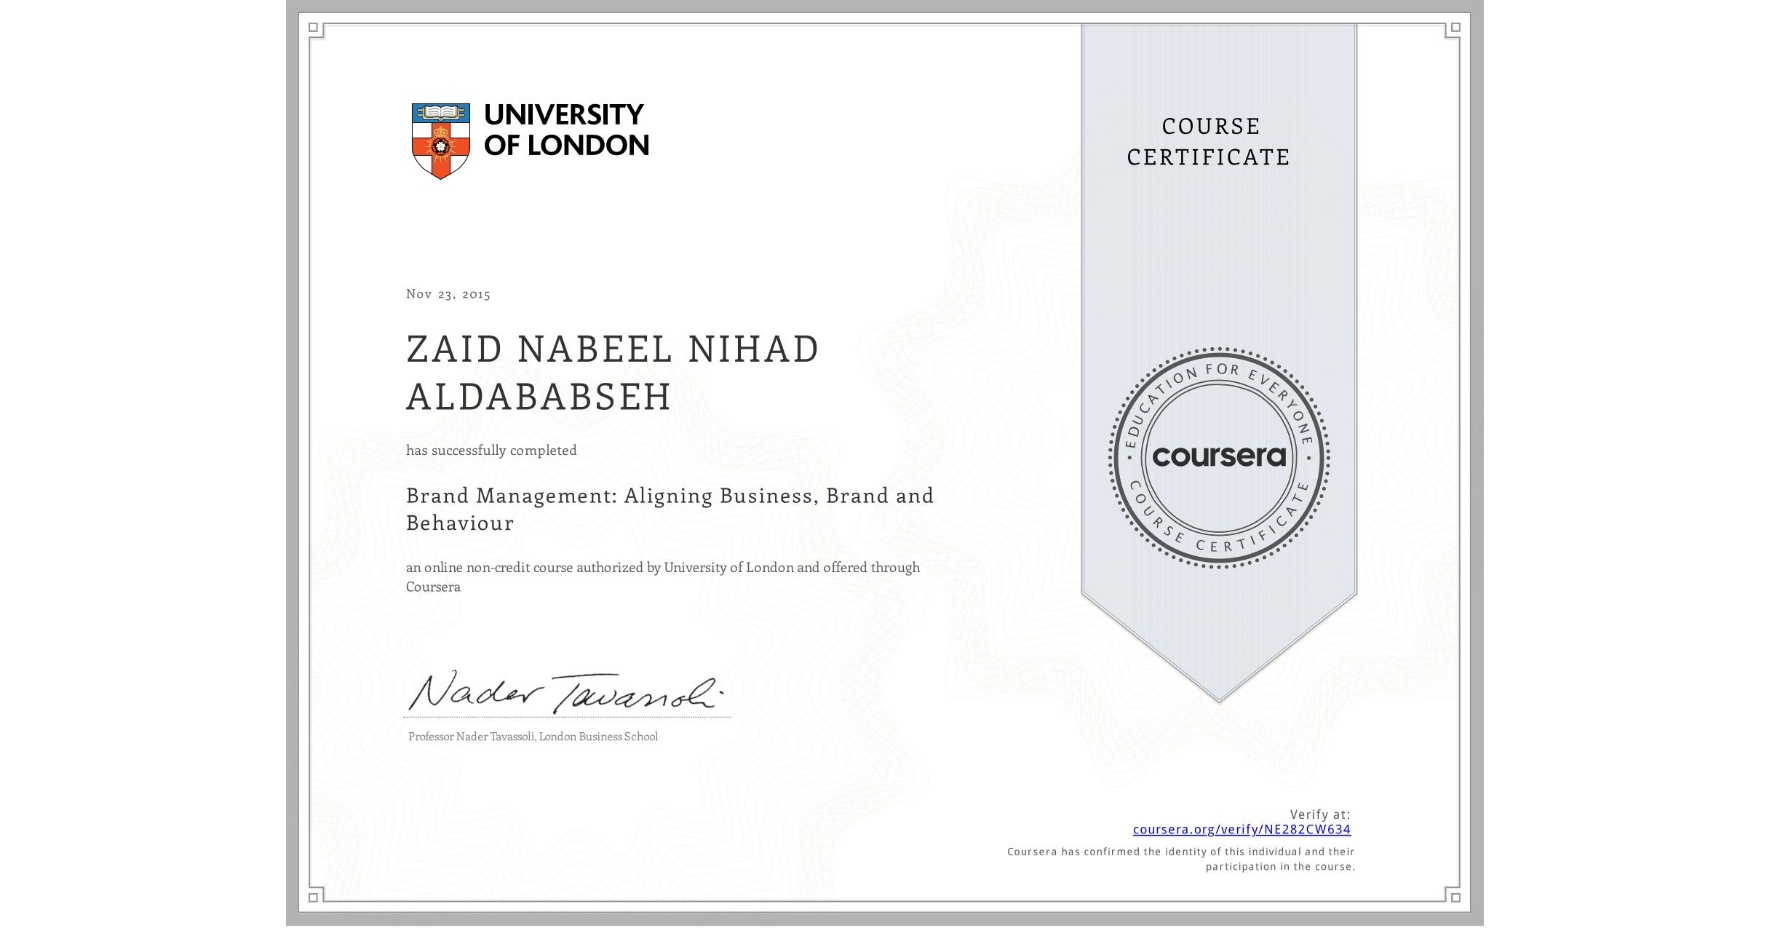 View certificate for ZAID NABEEL NIHAD  ALDABABSEH, Brand Management: Aligning Business, Brand and Behaviour, an online non-credit course authorized by University of London and offered through Coursera